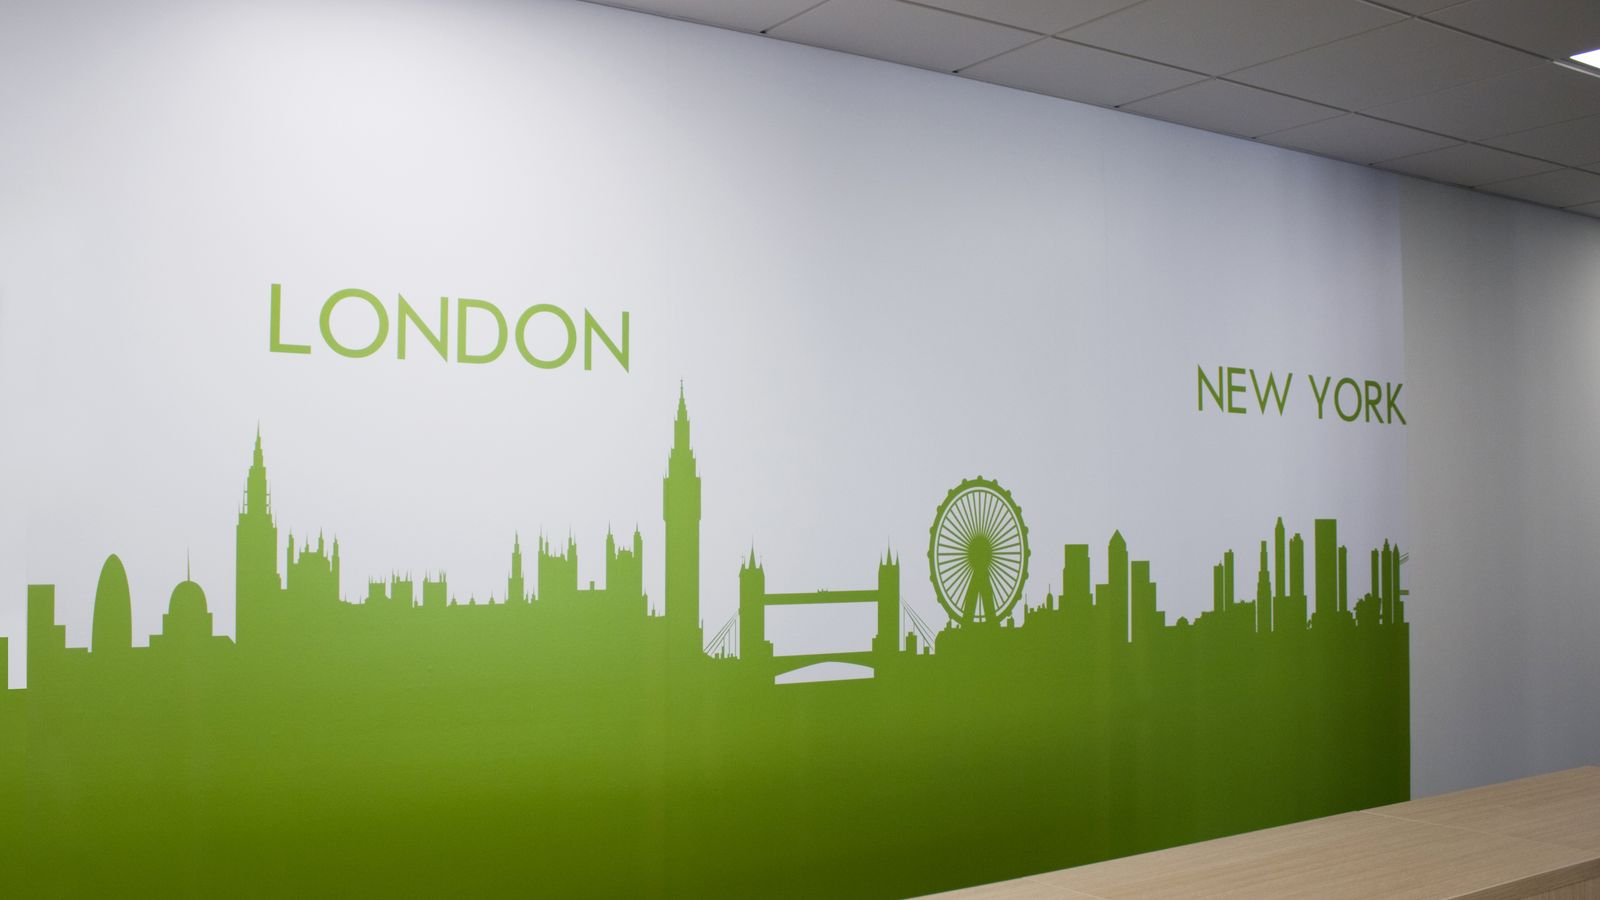 decorative interior wall sign with New York and London skyline graphics made of opaque vinyl for indoor branding